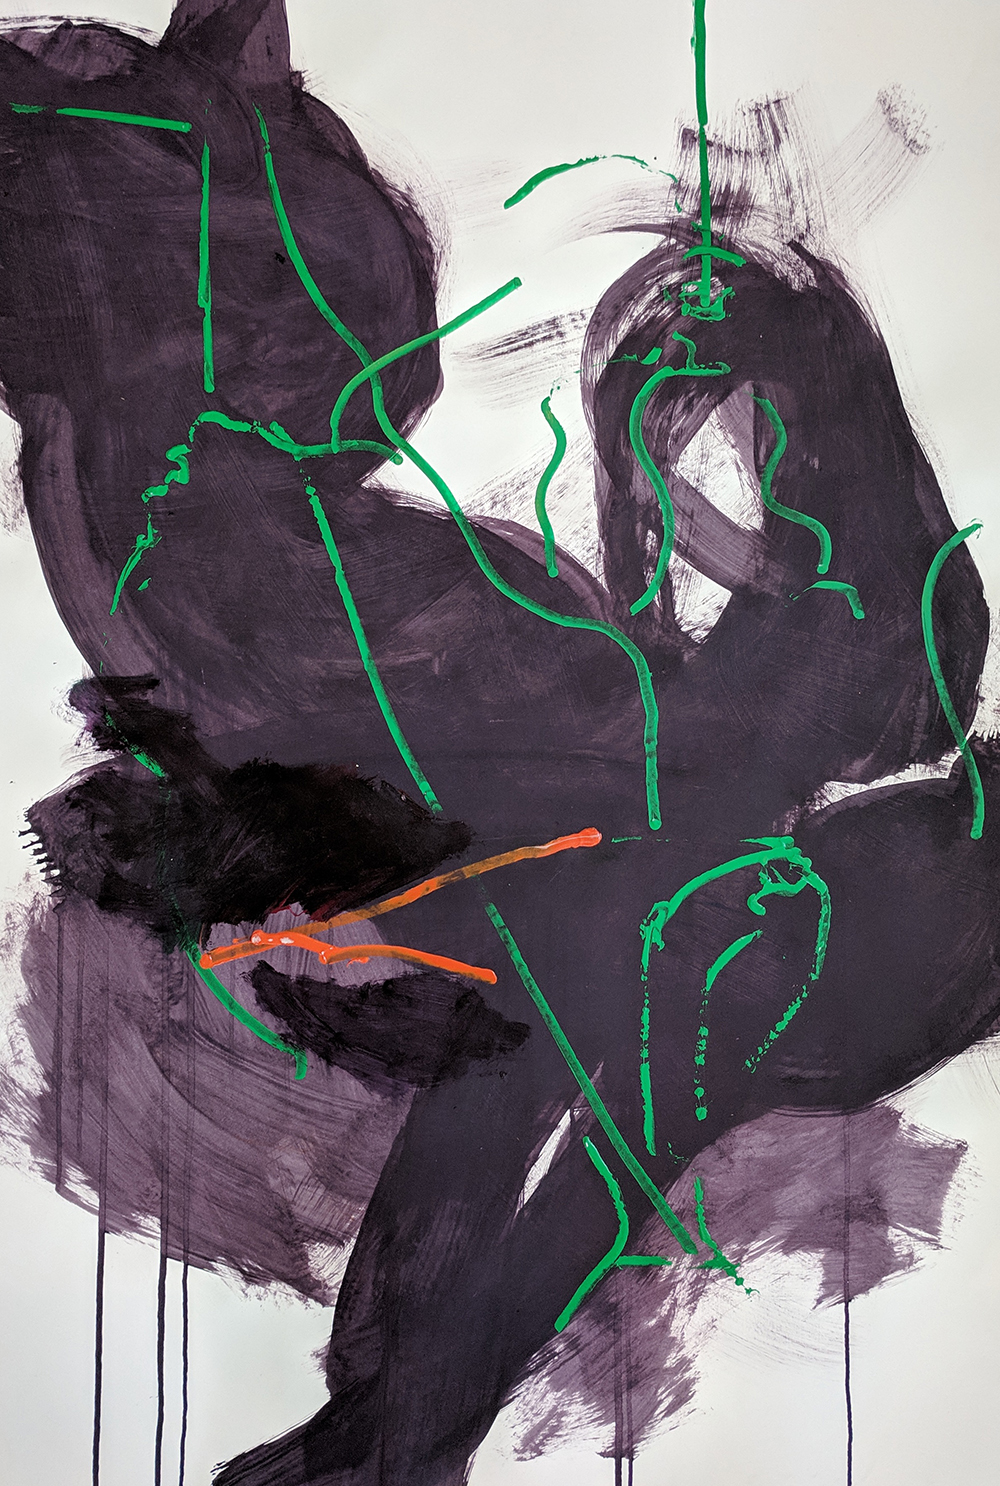 #1779 Untitled,   Acrylic on paper, c. 1980s, 44 x 30 1/2 inches